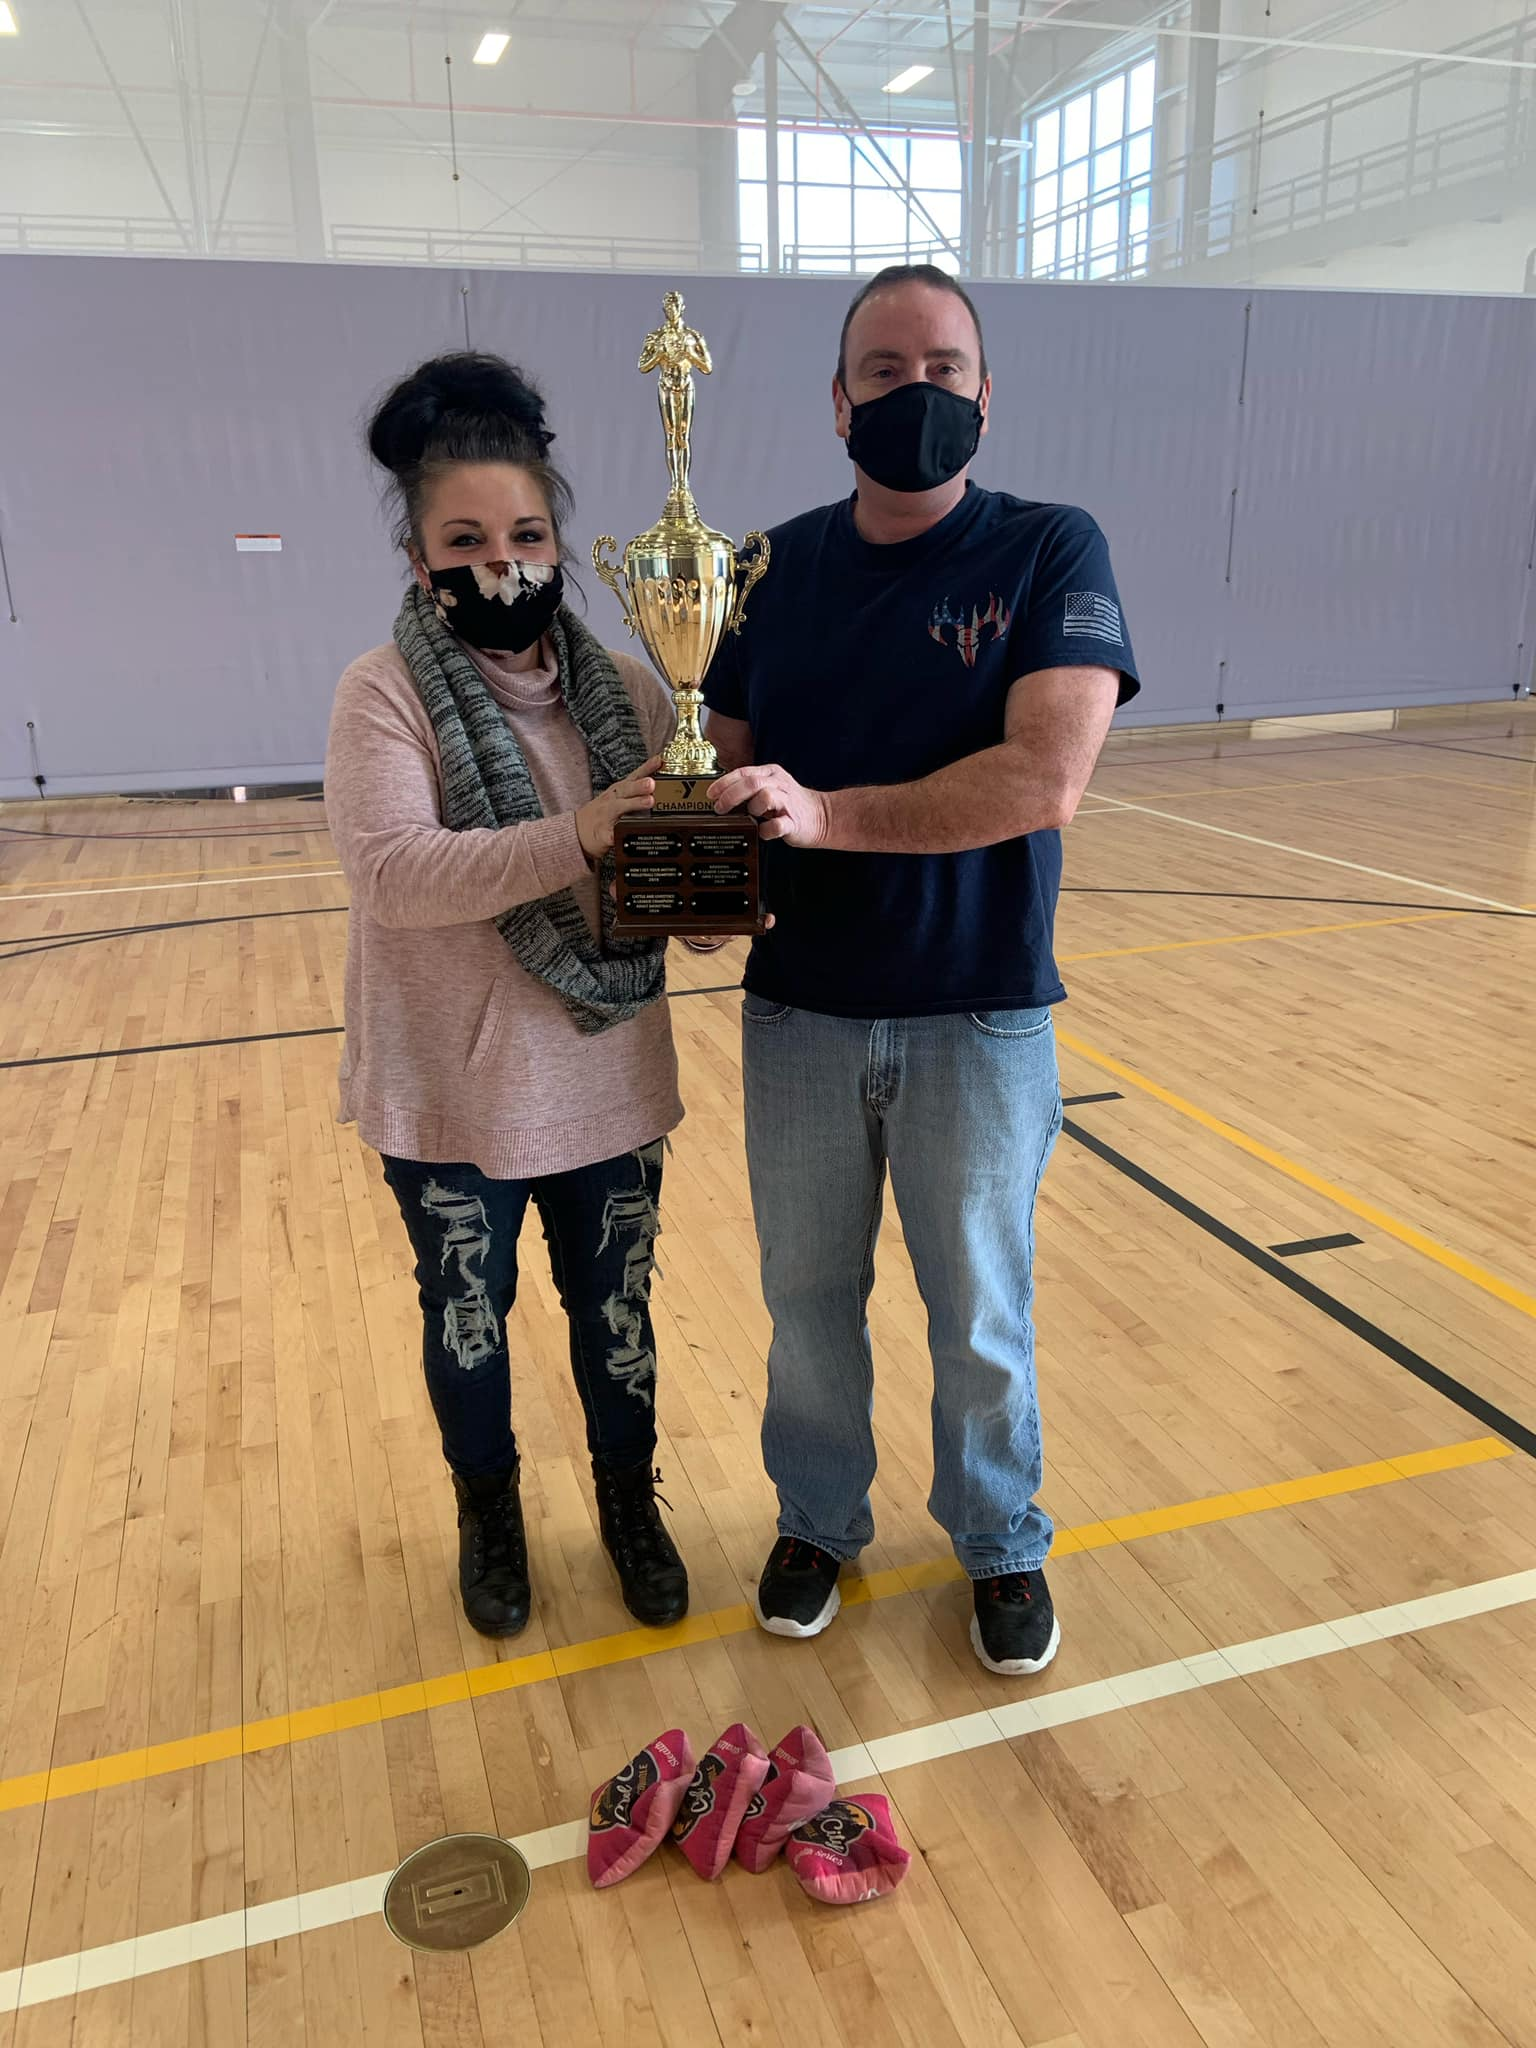 Eric and Heather were Cornhole Tournament Champions at the YMCA! Courtesy of Clarion County YMCA.